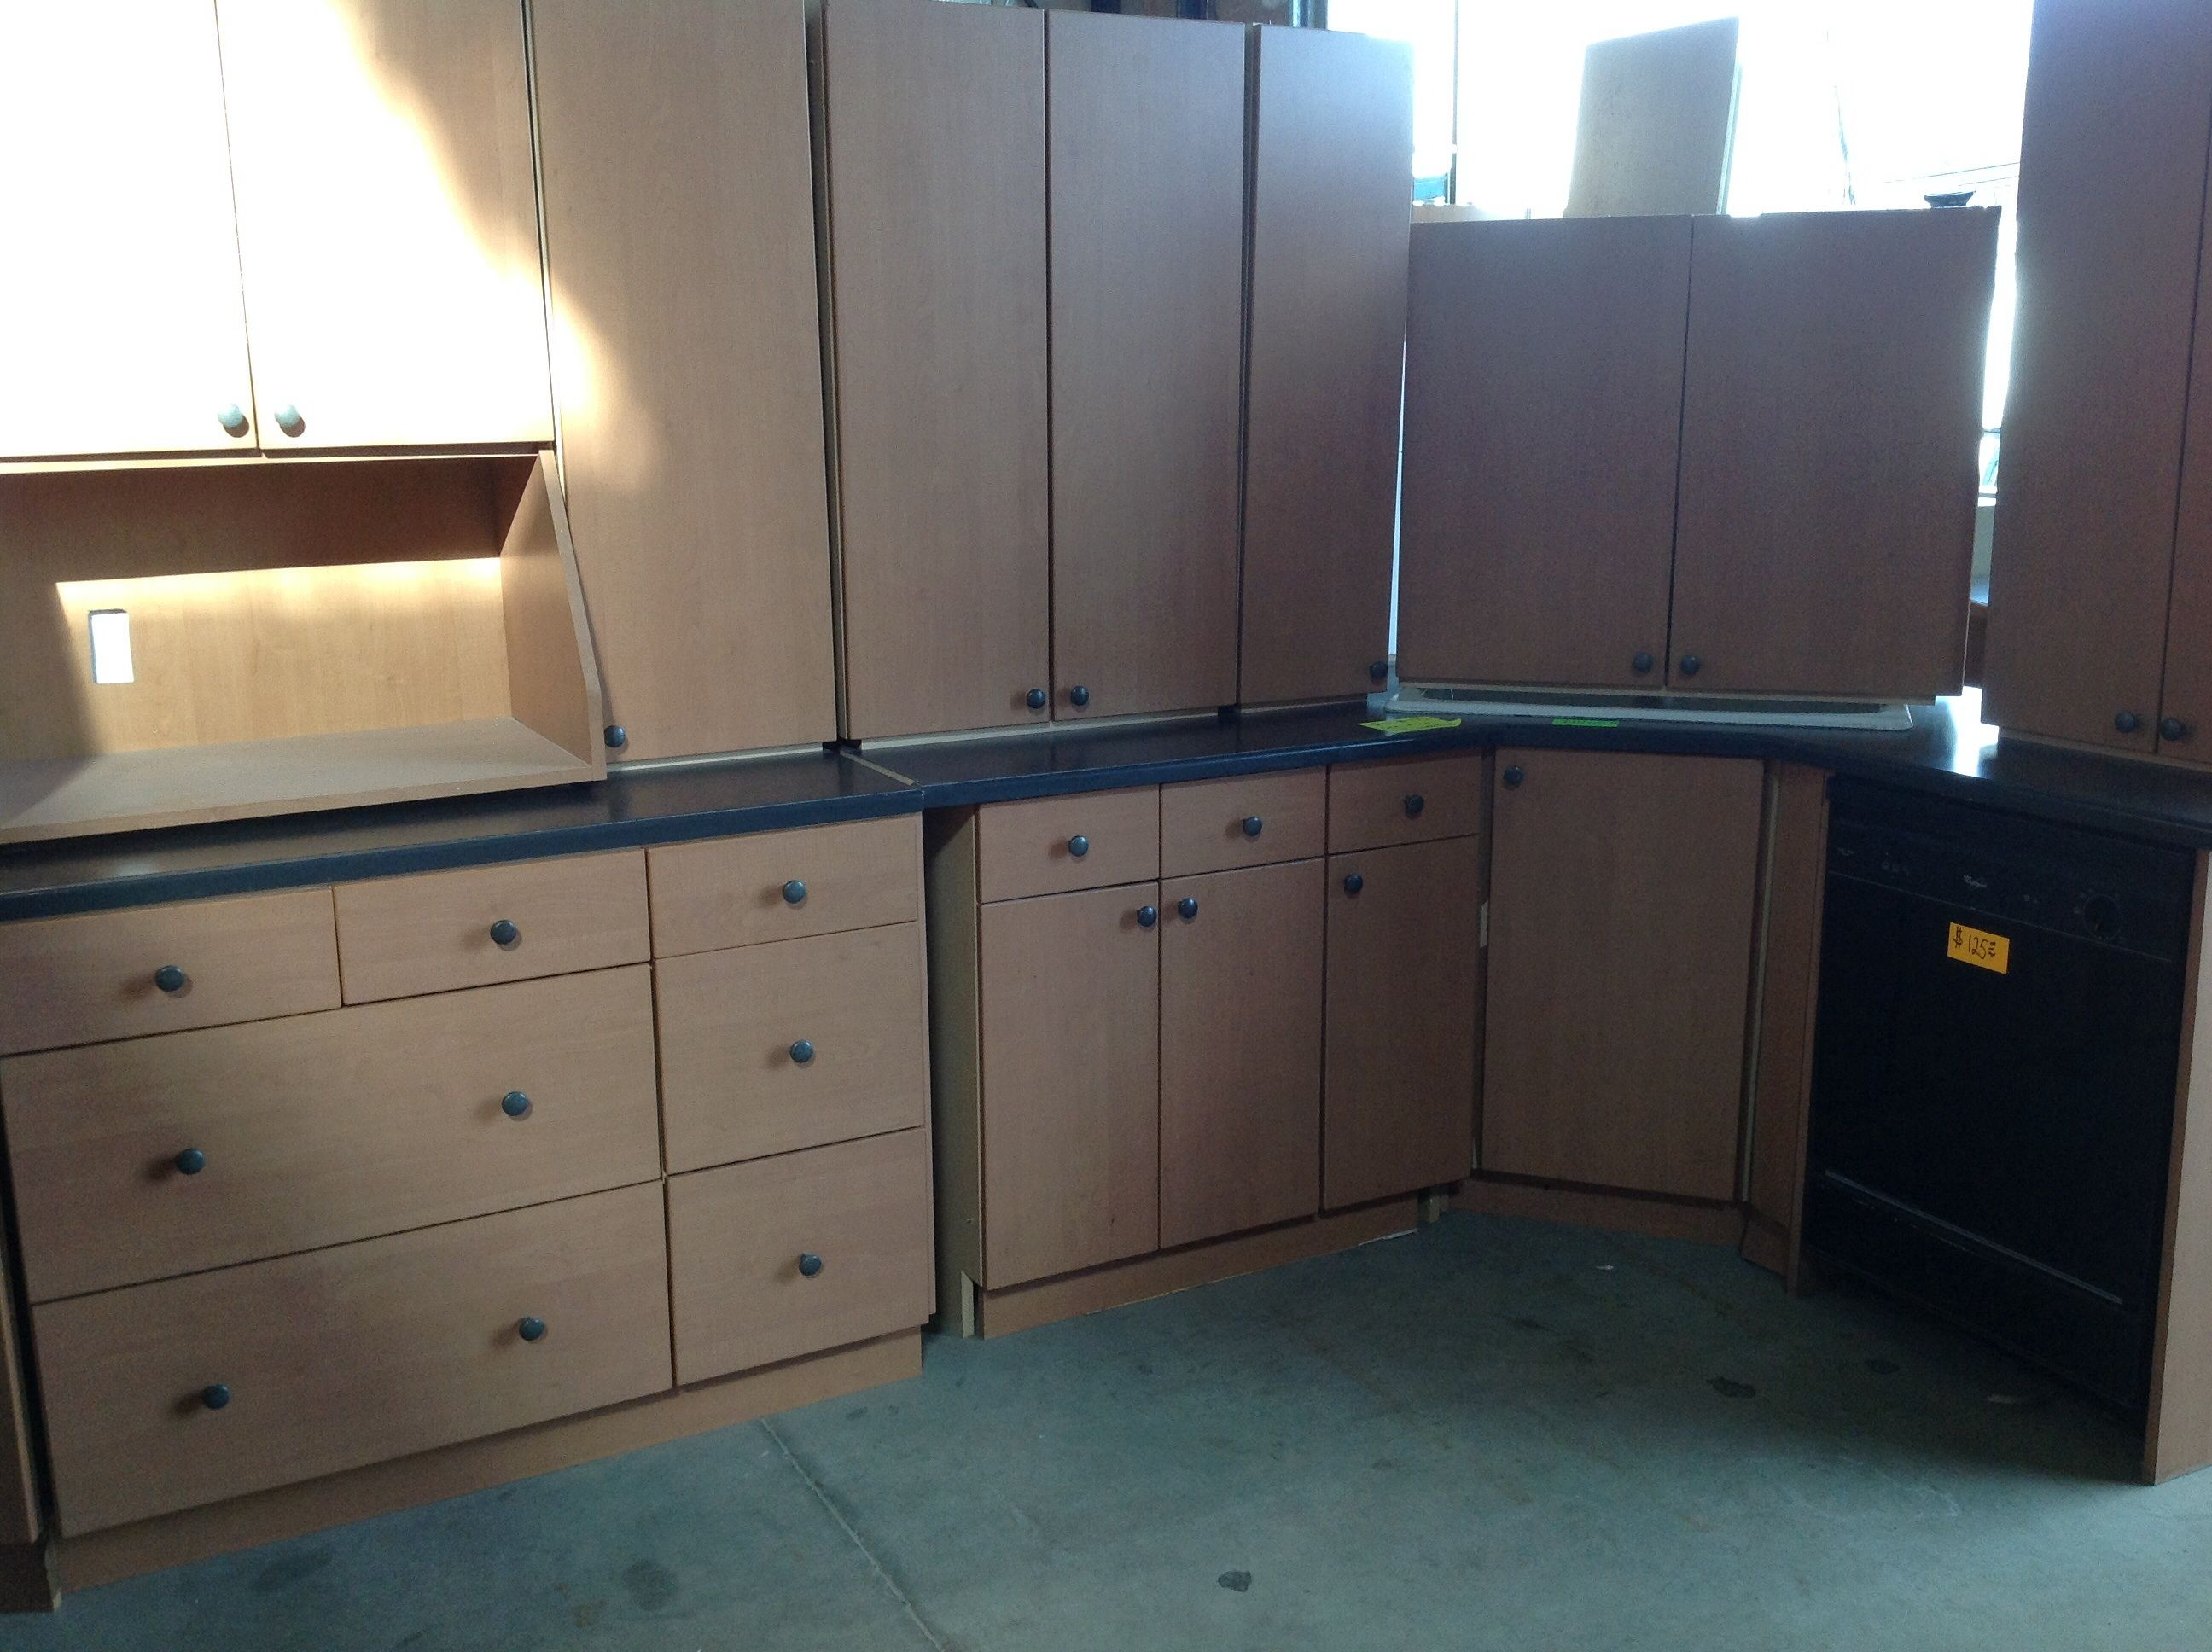 Used Kitchen Set For Sale At Chilliwack New And Used Building Materials Inc Kitchen Sets Window Handles Kitchen Cabinets